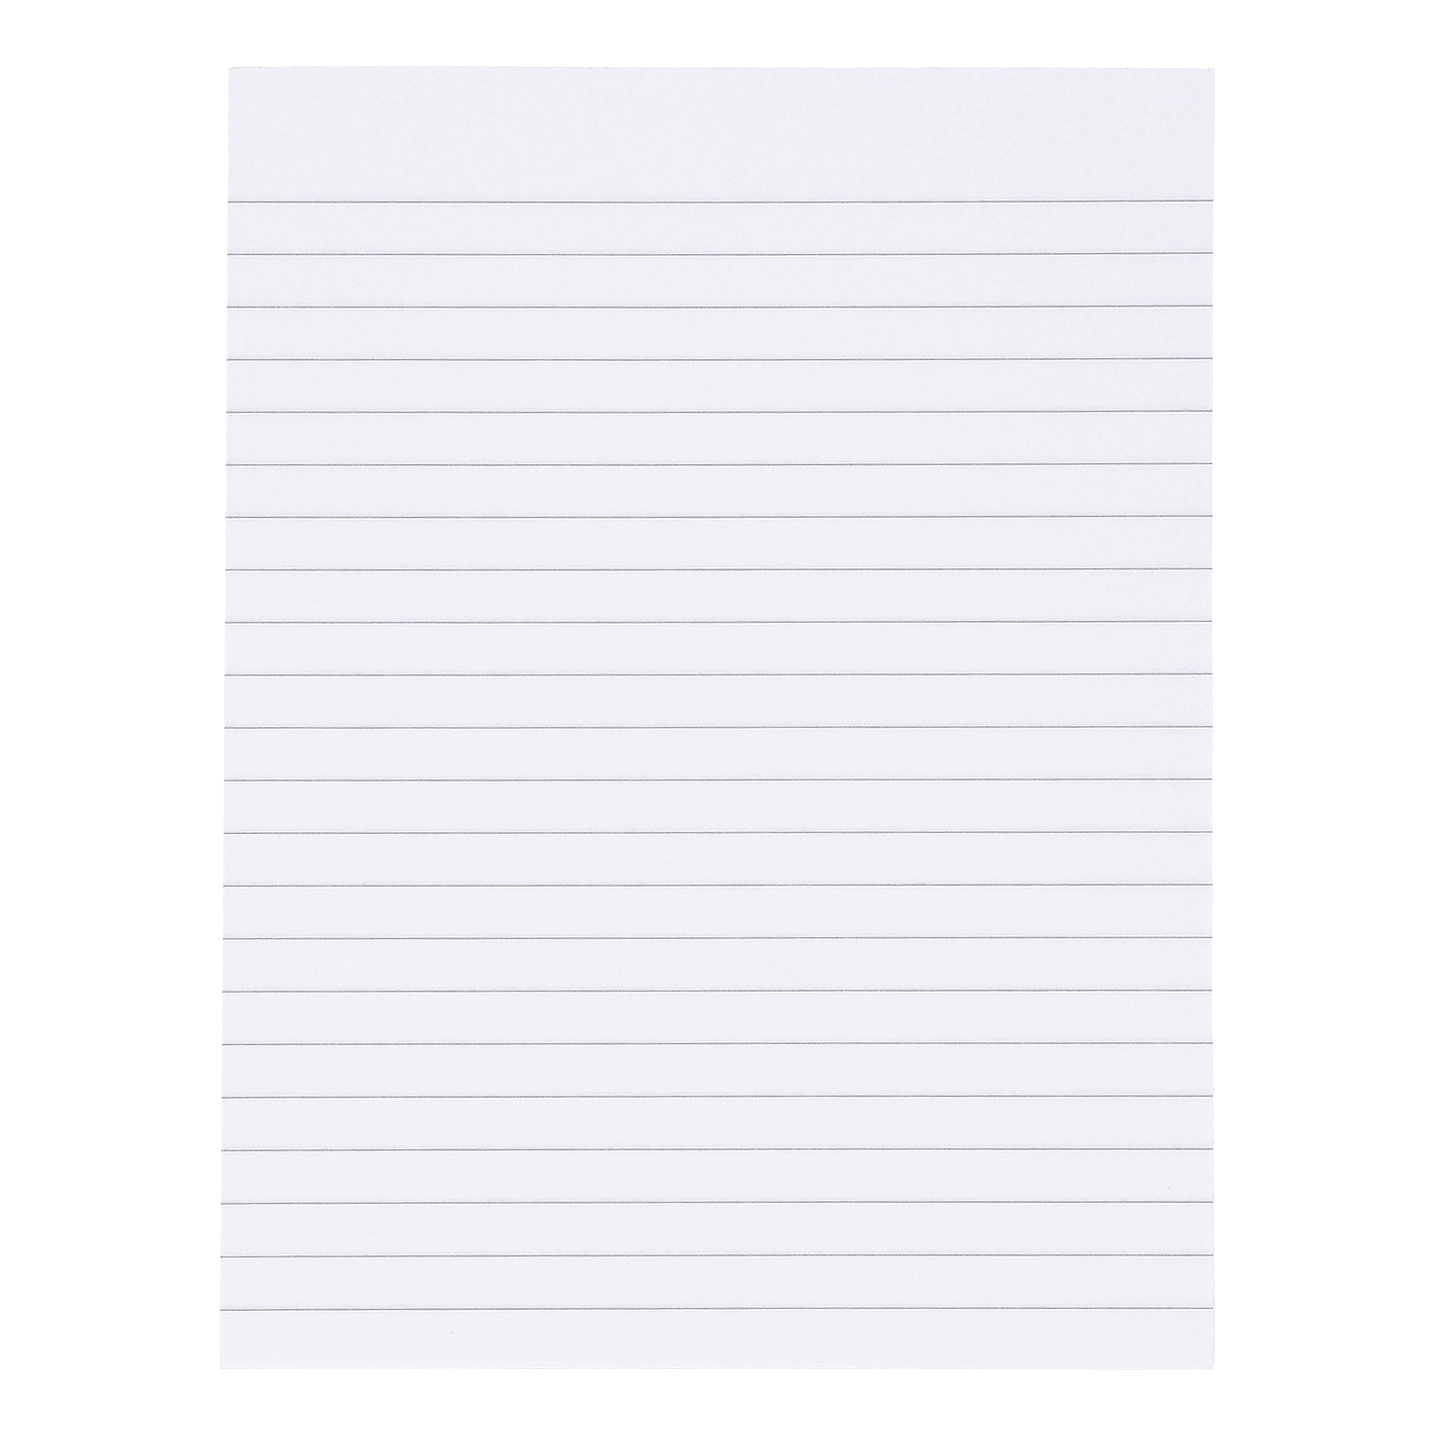 5 Star Value Memo Pad Headbound 60gsm Ruled 160pp 150x200mm White Paper [Pack 10]